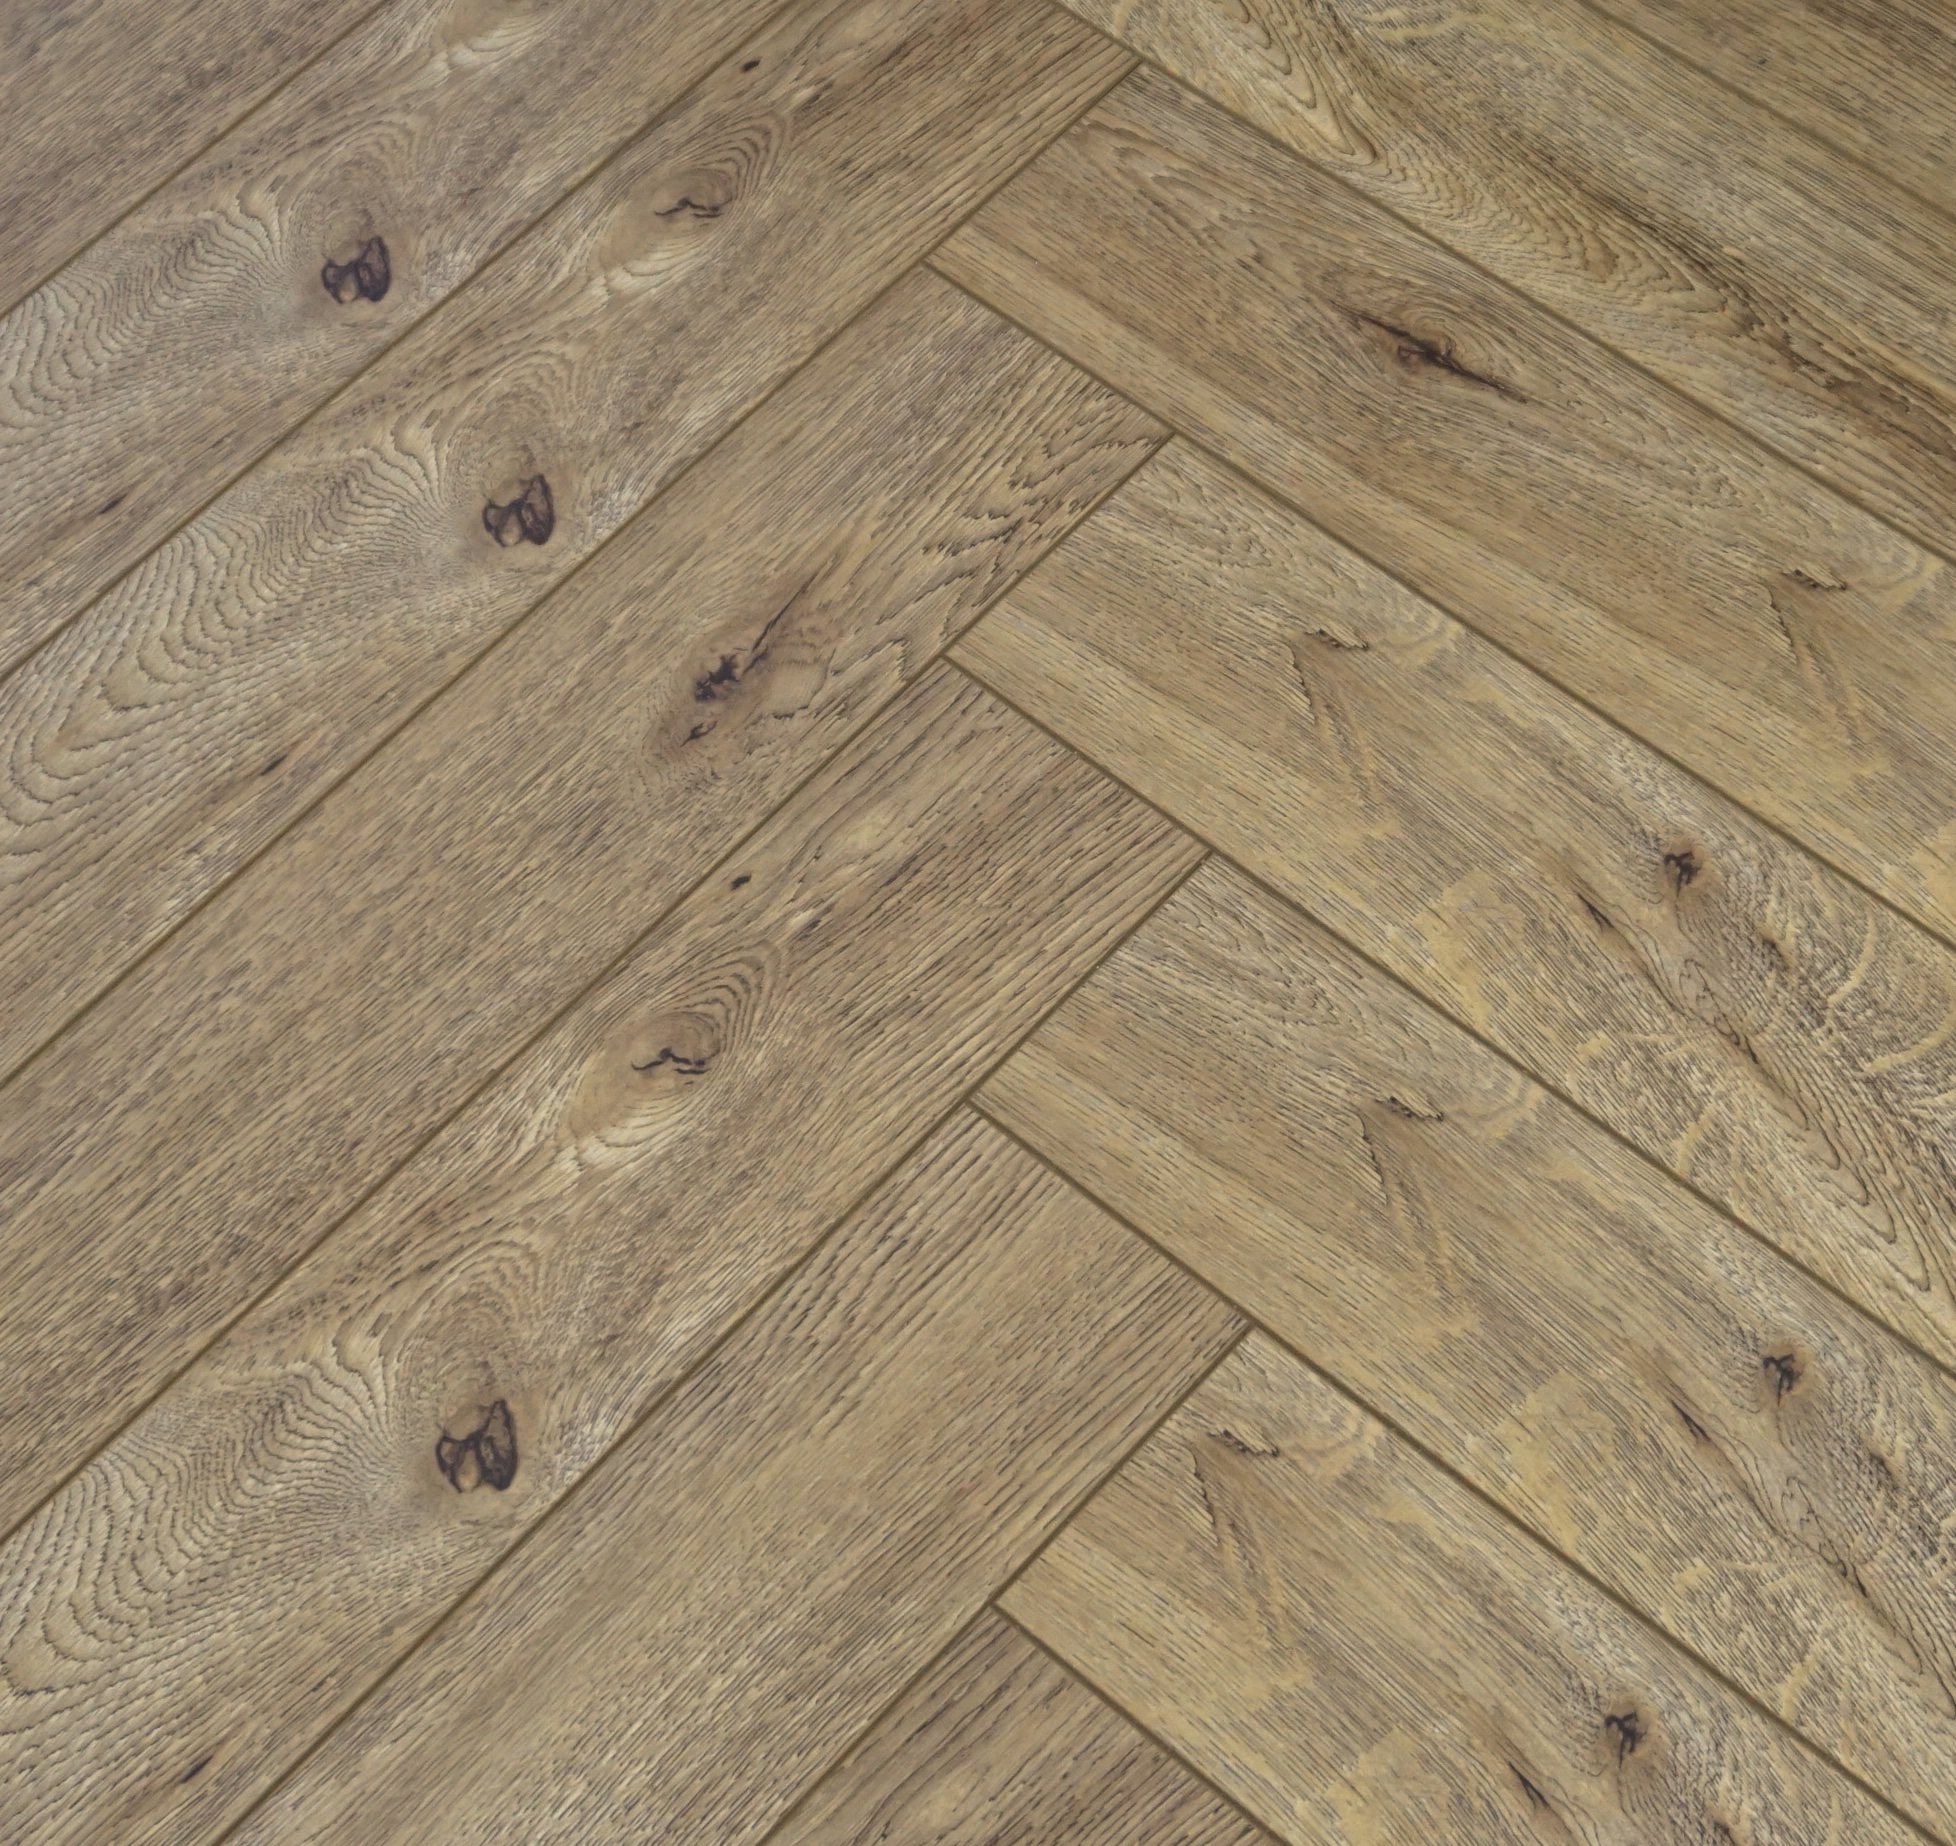 Vivant Vintage Herringbone 12mm Royal Oak 4V Laminate